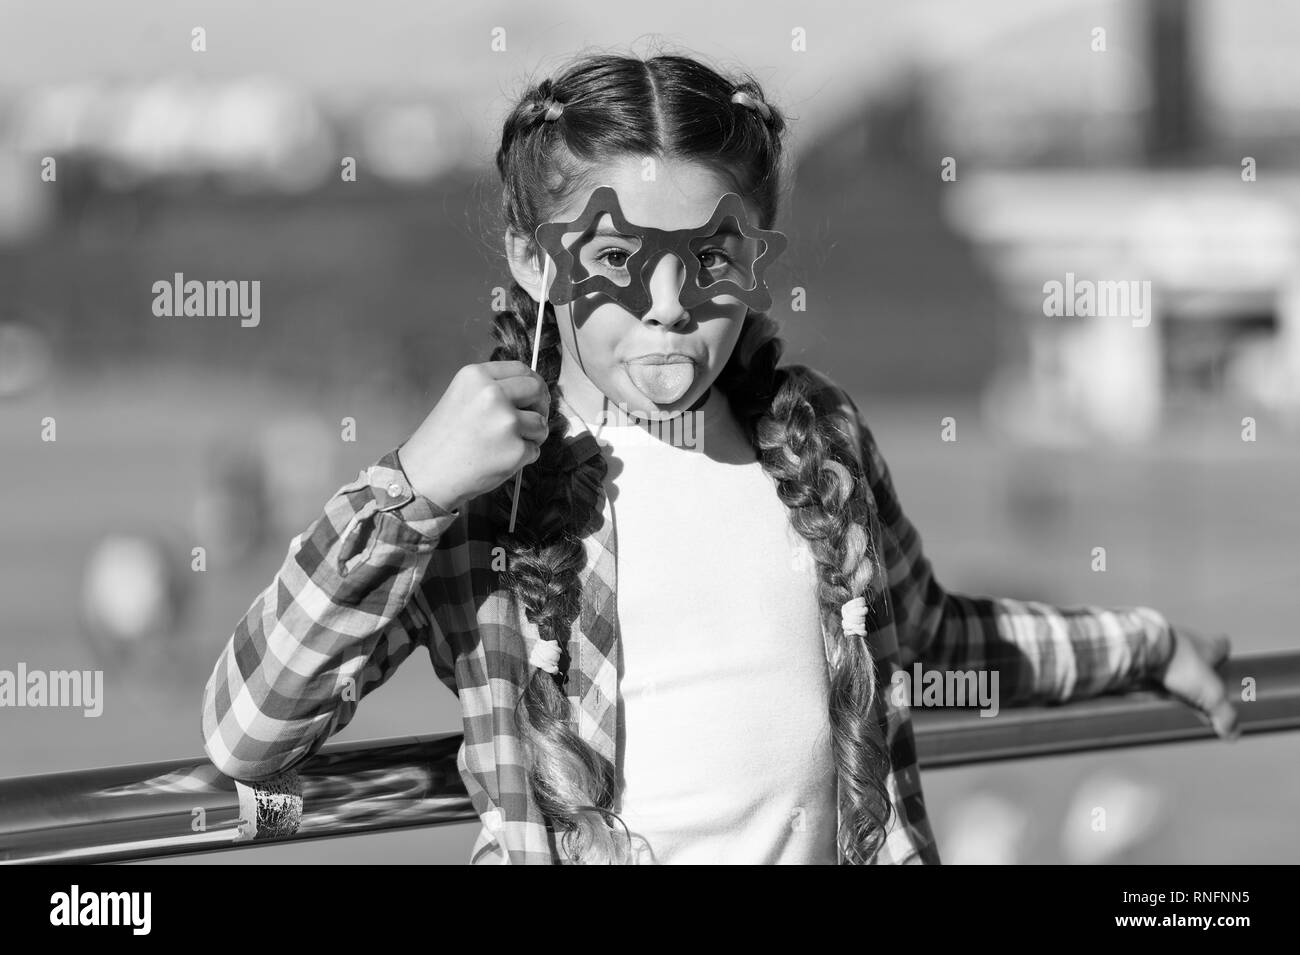 Getting ready for party. Small naughty girl having fun. Fashionable glasses for celebration. Stylish look. Disobedient small girl showing her tounge. Positive moments. Concept of childish carelessness. - Stock Image